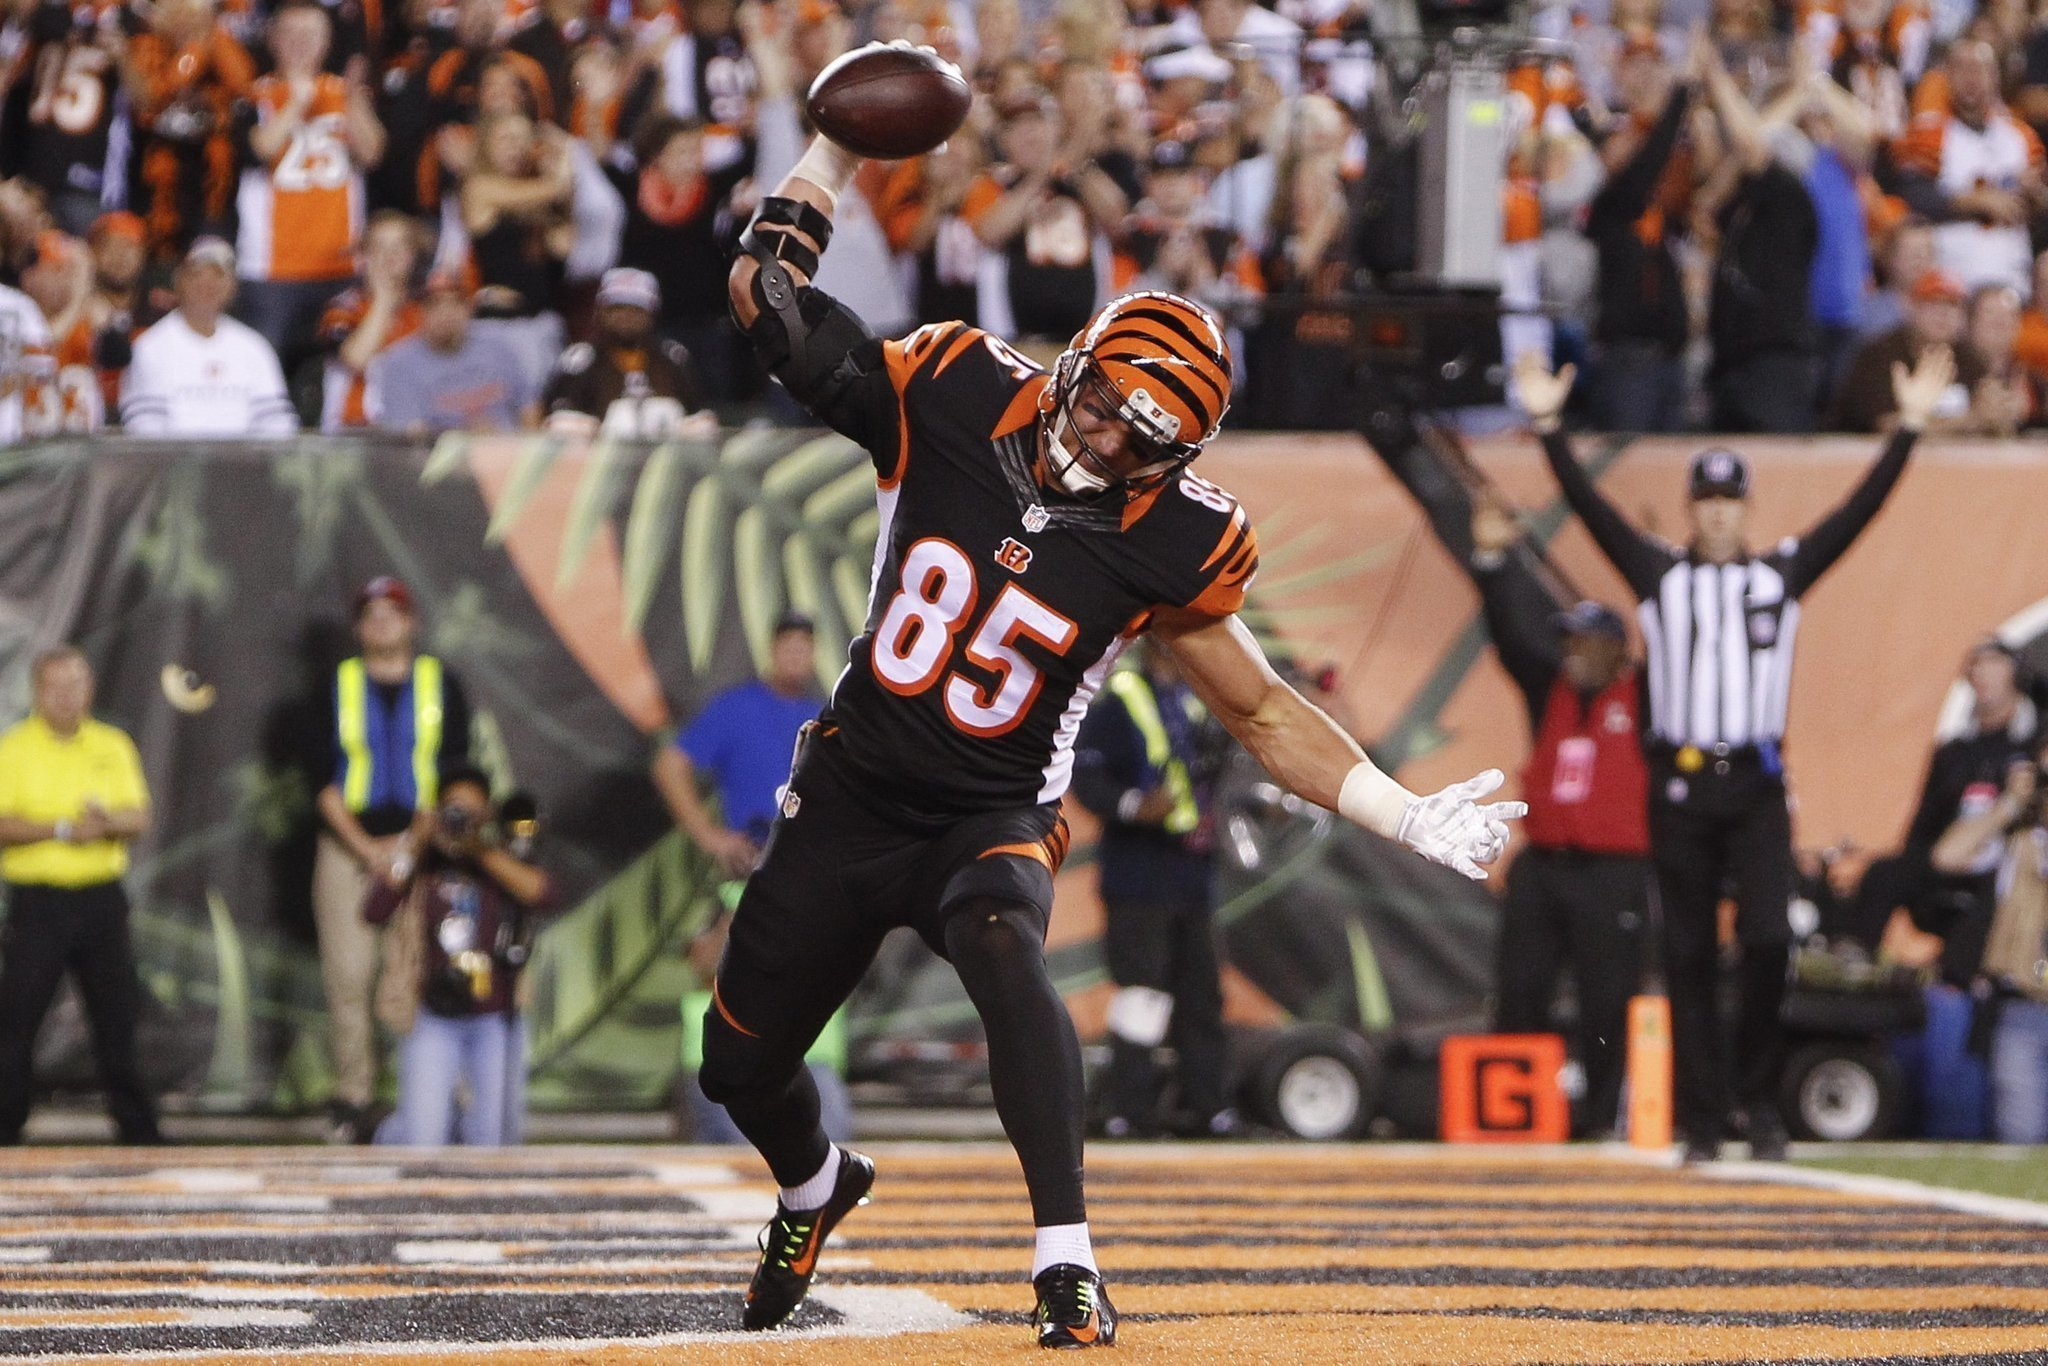 Bengals TE Eifert emerges leads NFL in touchdown catches The